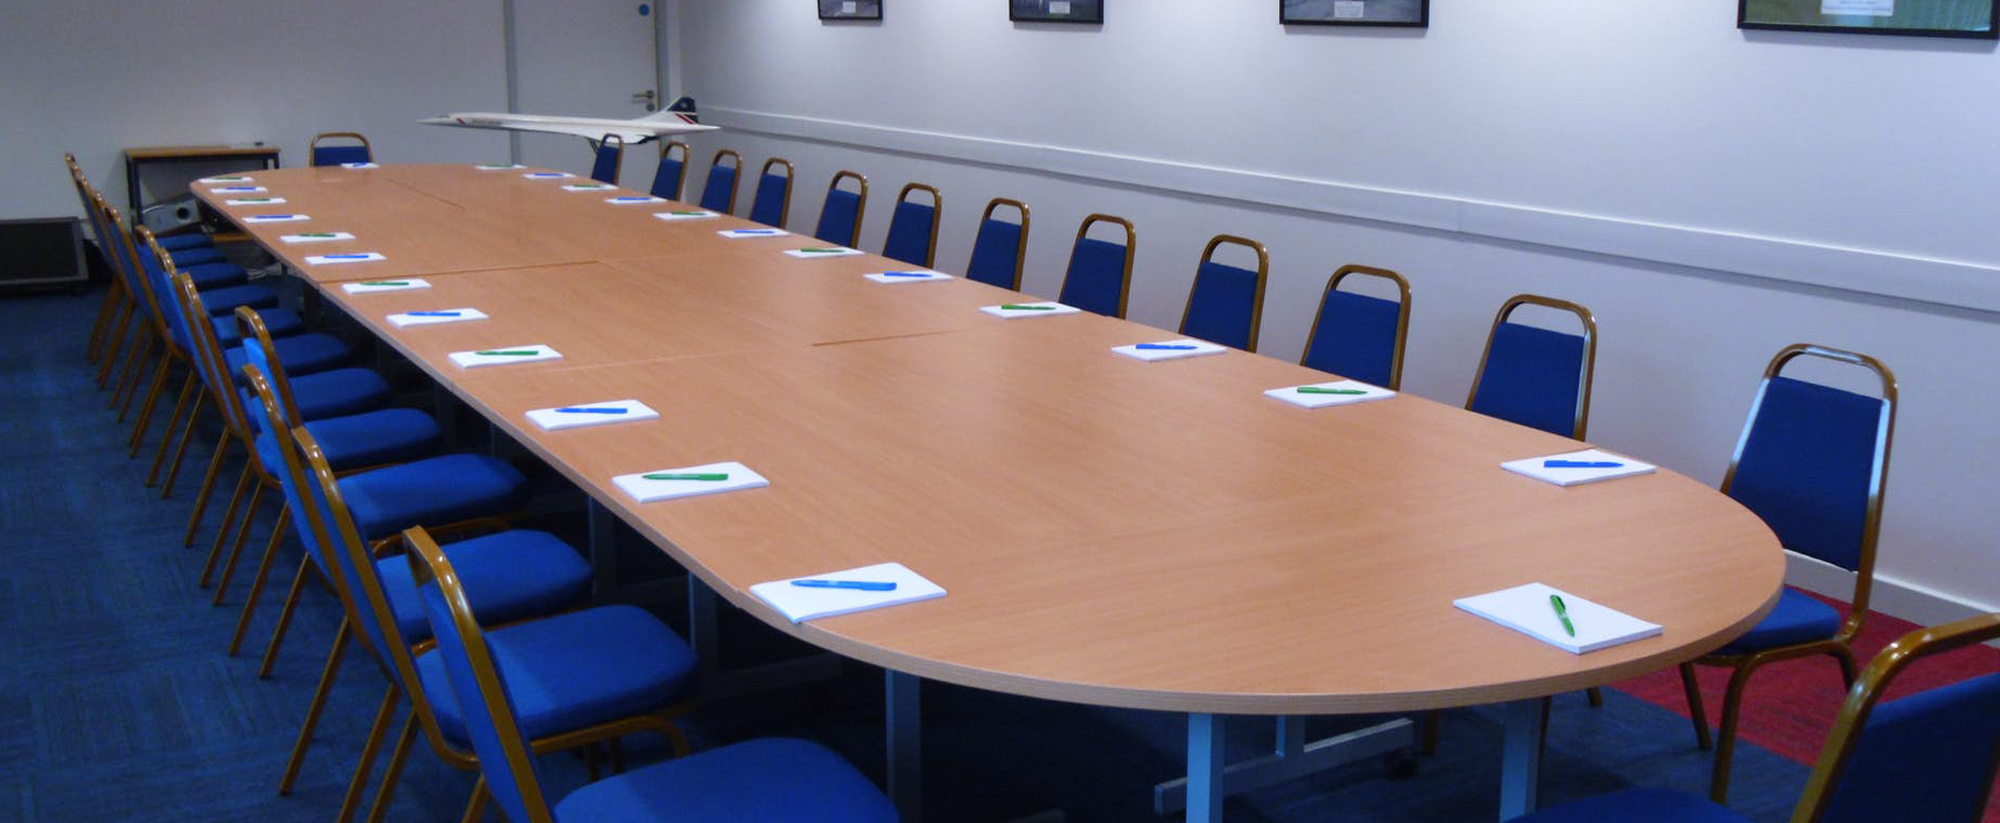 Meeting Spaces at the Concorde Conference Centre